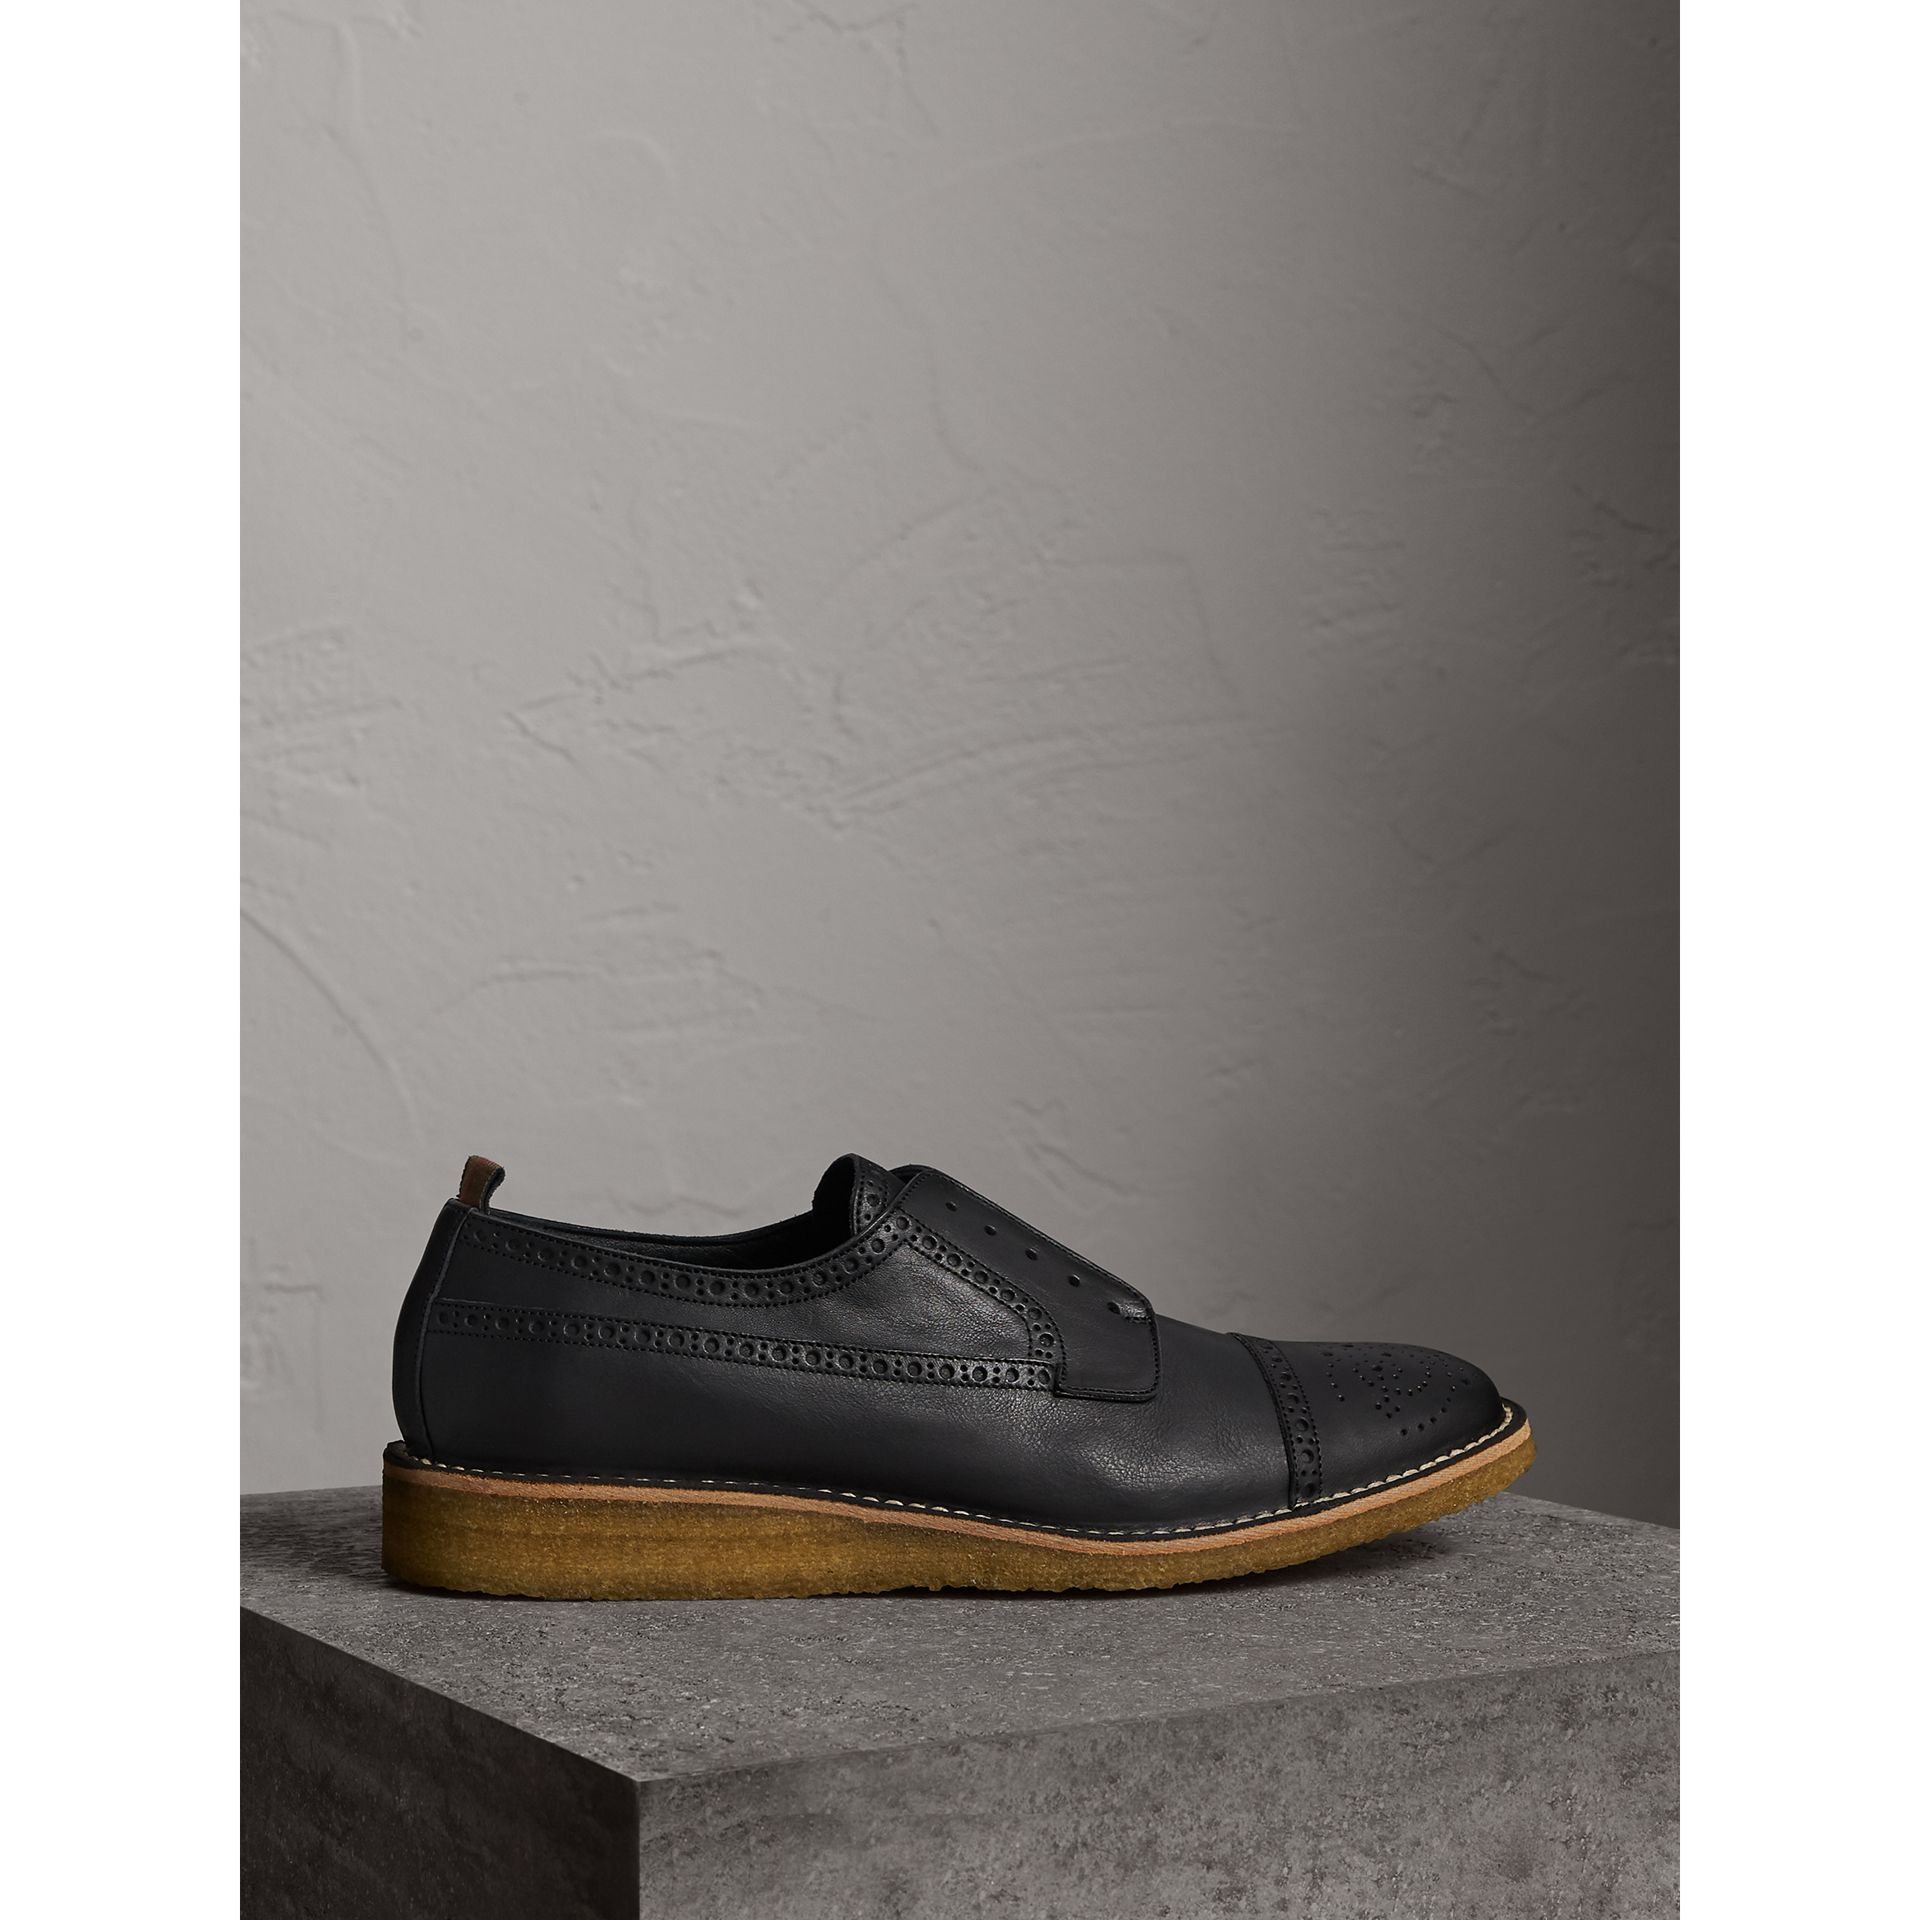 Raised Toe-cap Leather Brogues in Black - Men | Burberry - gallery image 4